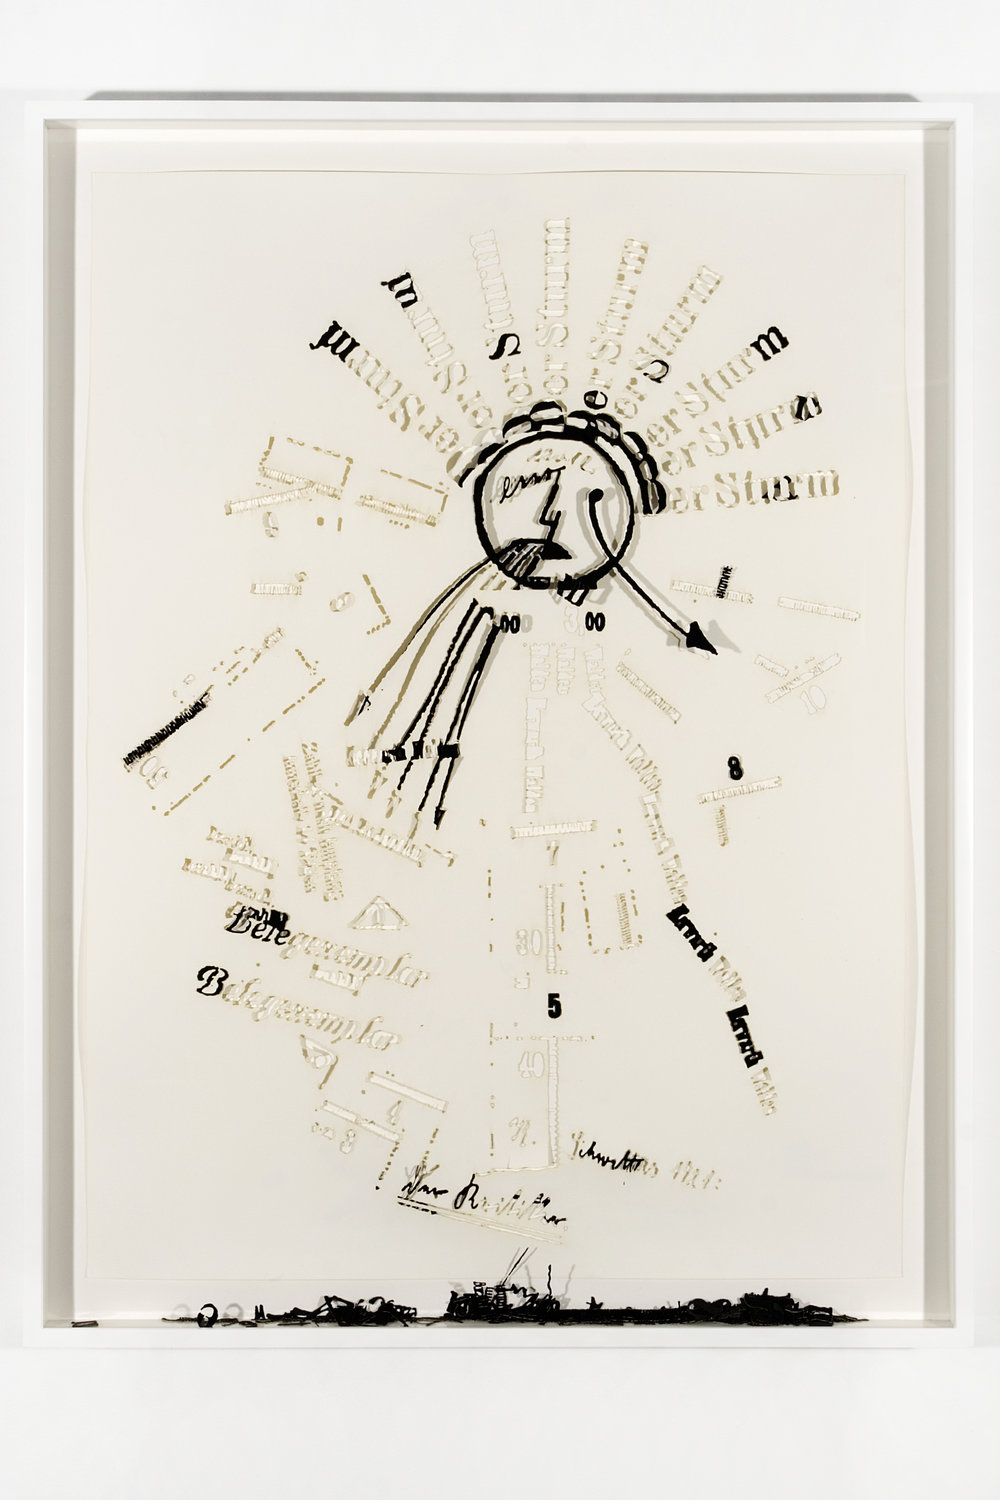 """Collapsed Drawing: """"The Critic"""" (Kurt Schwitters), 2007 laser-cut paper and laser-cut archival digital print mounted on museum board 98,5 x 75,3 cm - 38 3/4 x 29 5/8 inches (framed)"""